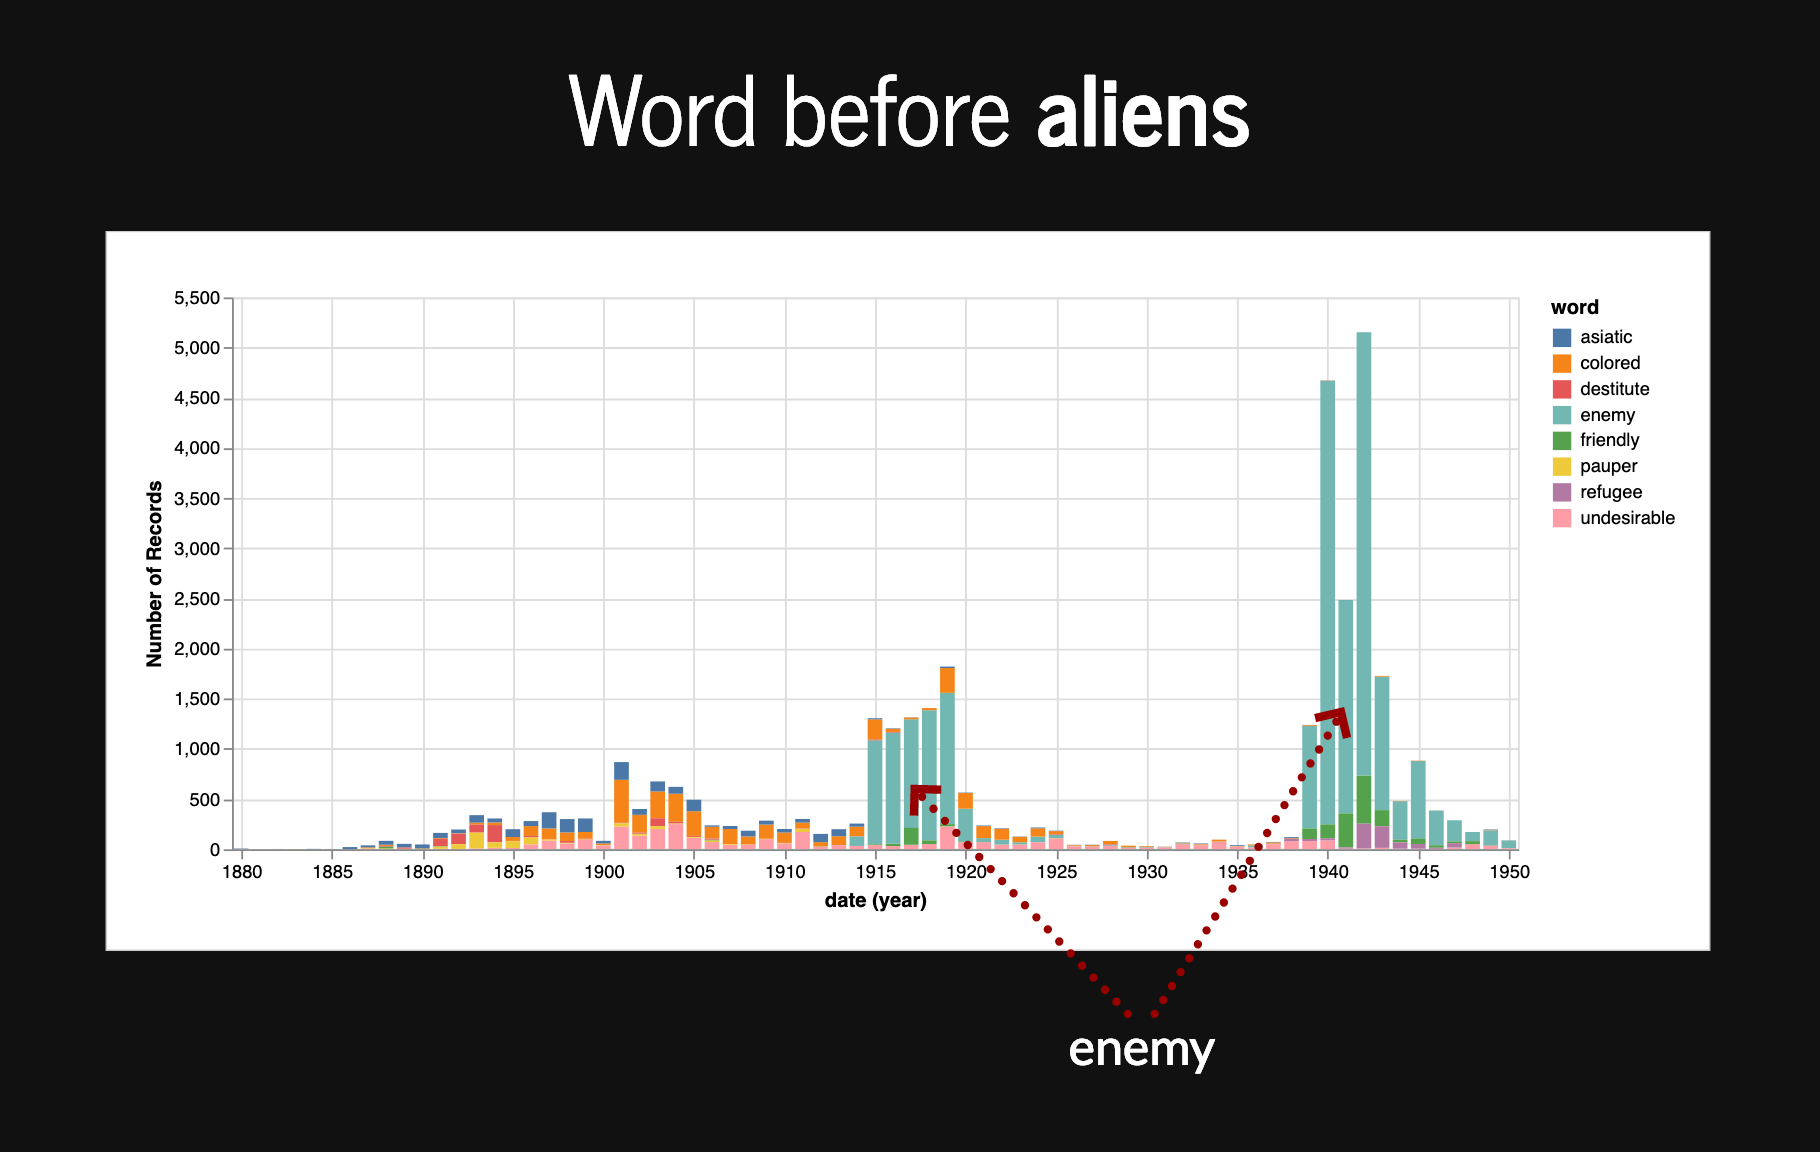 Words appearing before aliens plotted by date and frequency